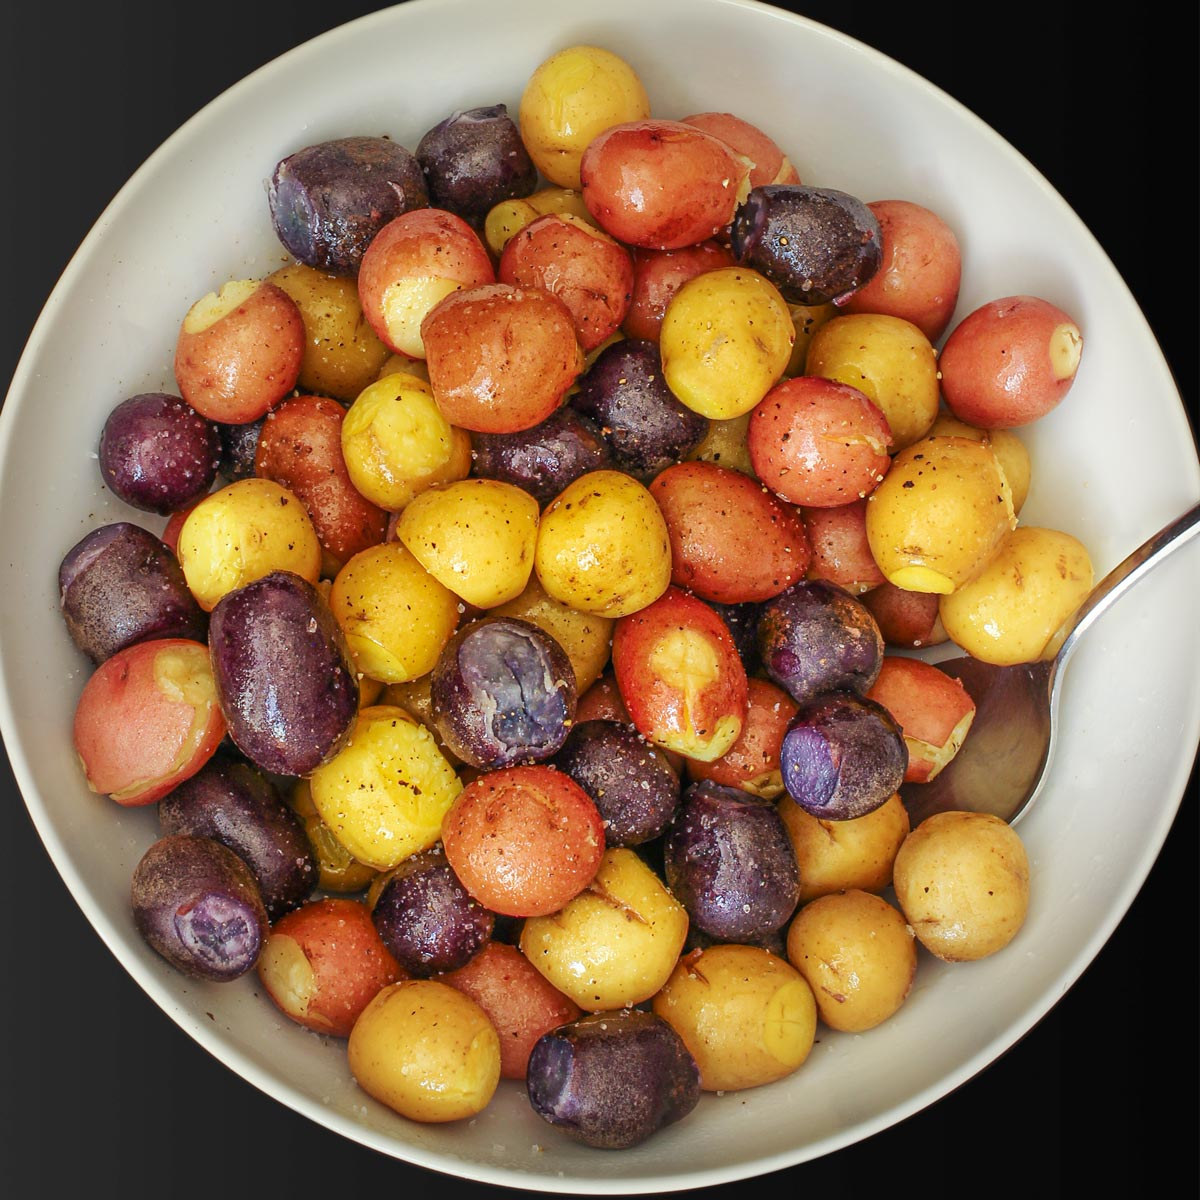 tri-color potatoes cooked and seasoned in a large white bowl.